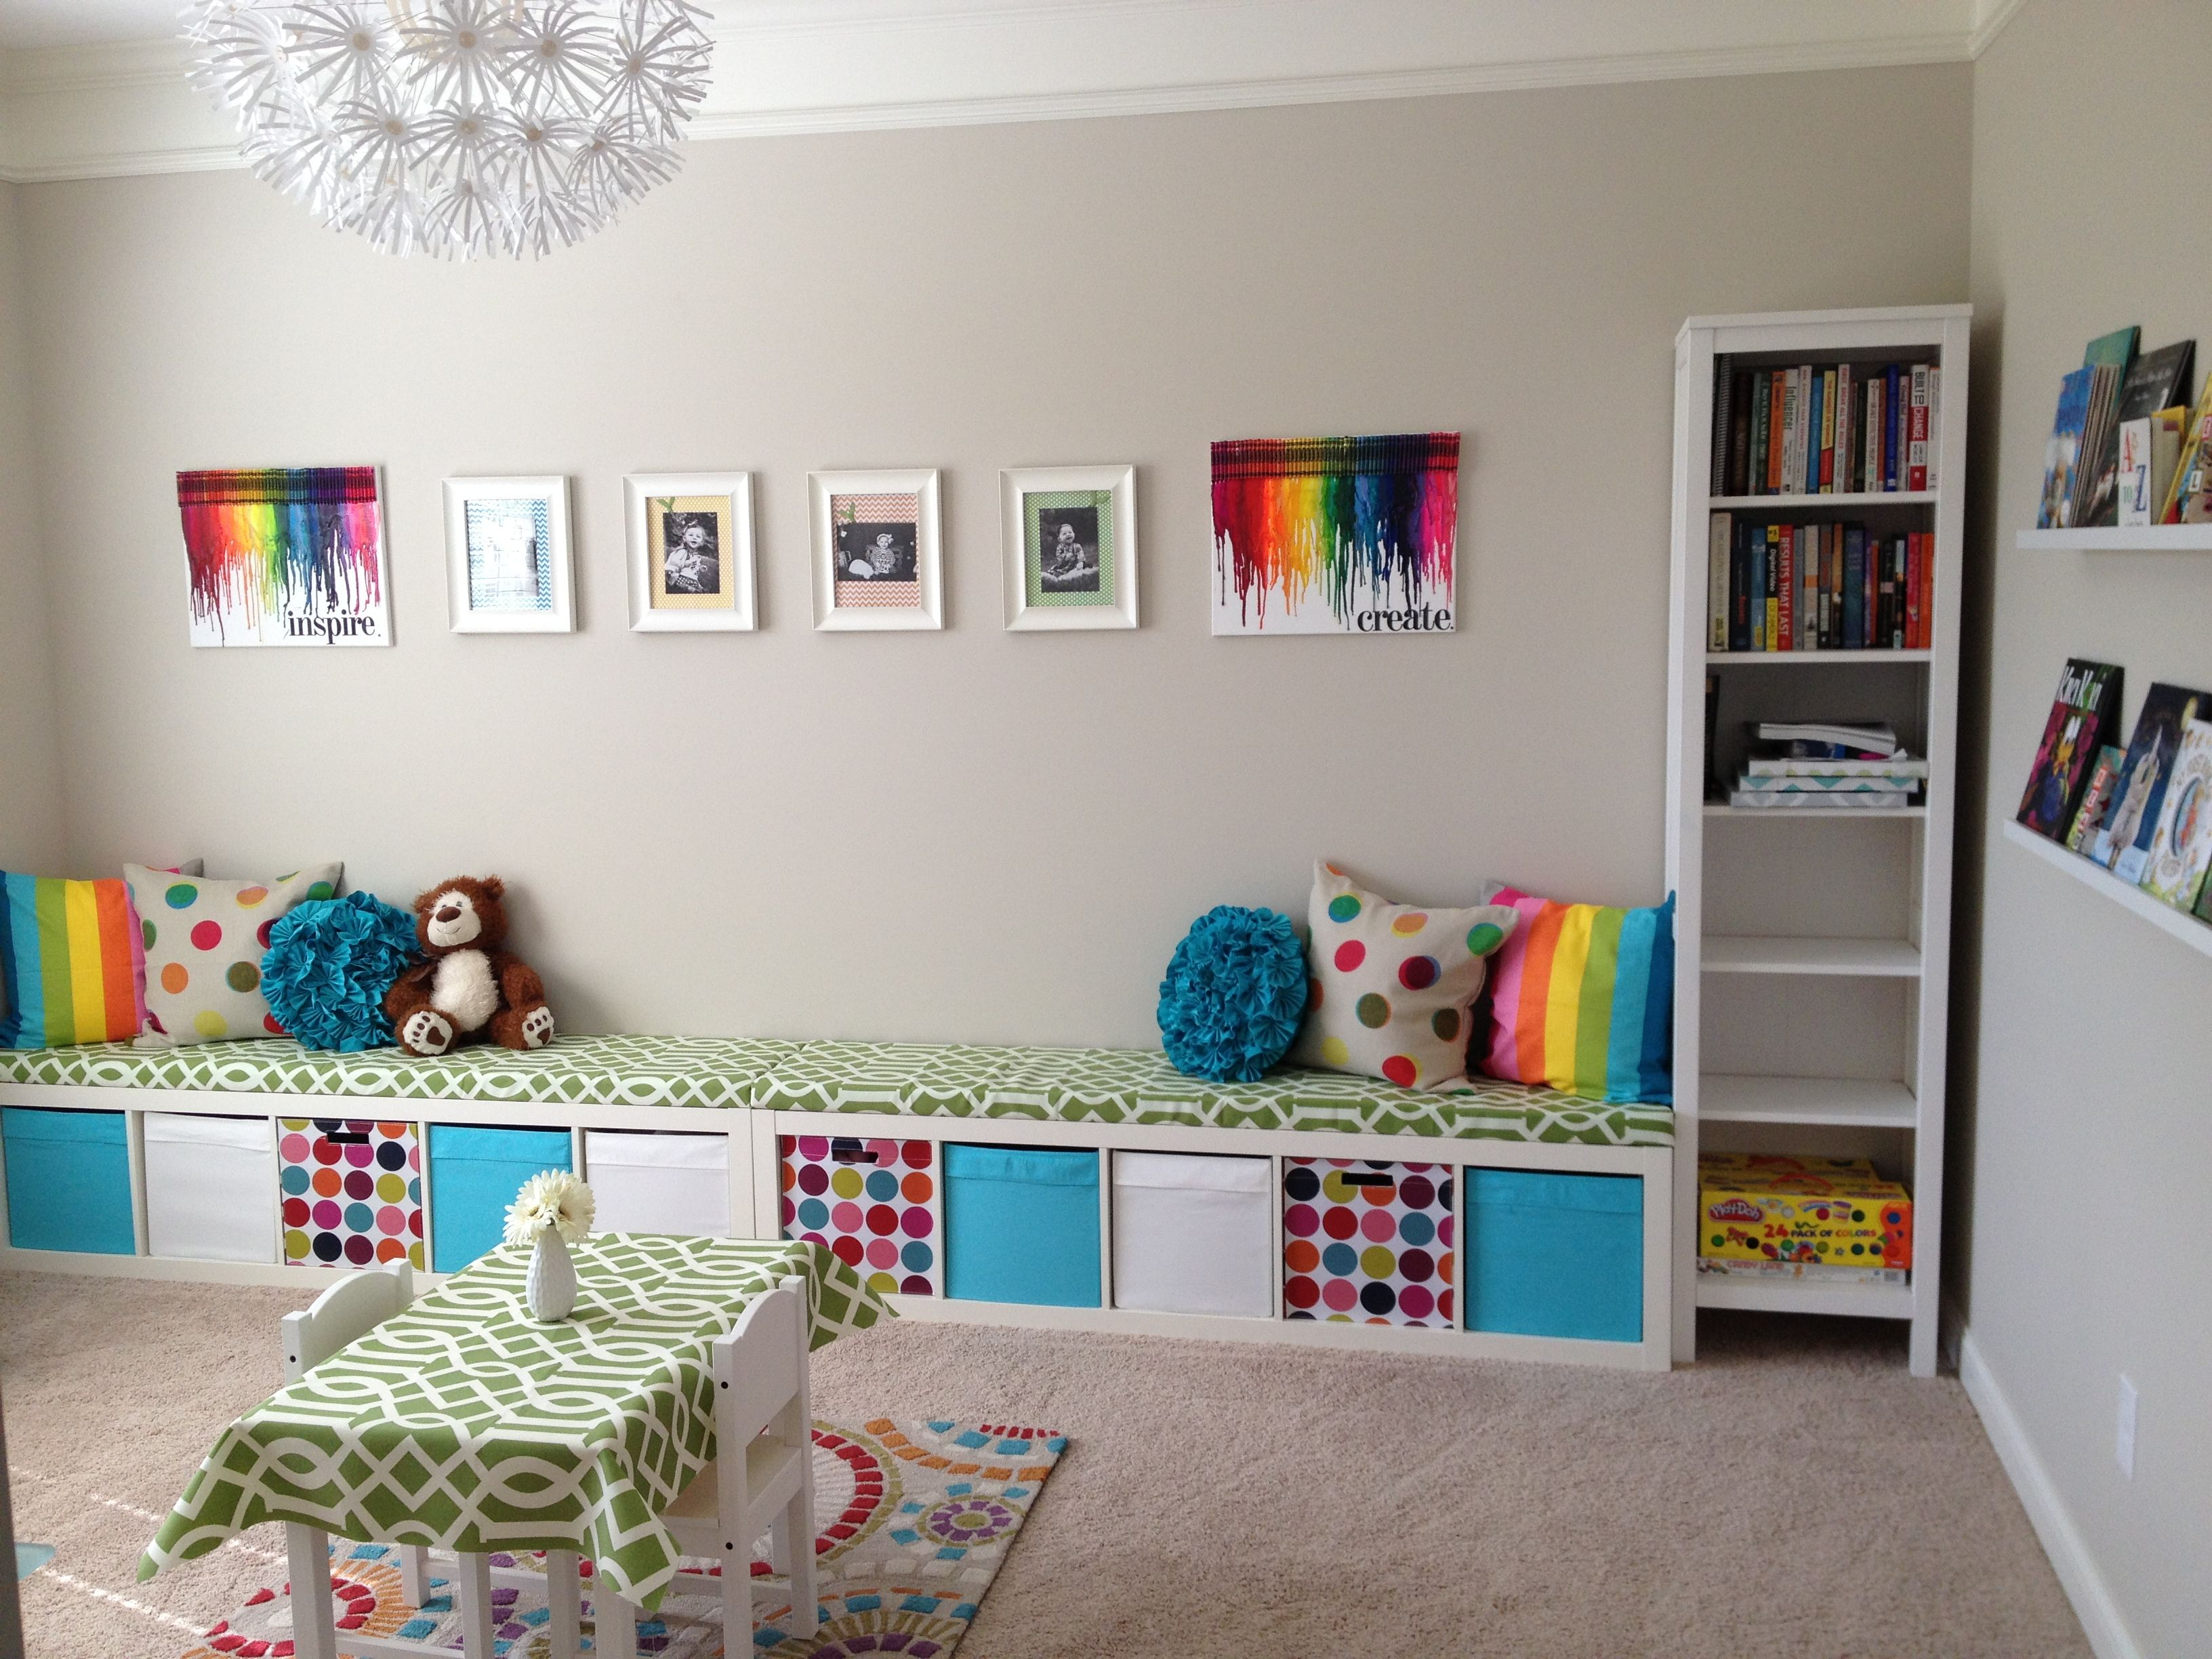 Design Playroom Storage ikea expedit playroom storage bench two together to go down the long wall of the